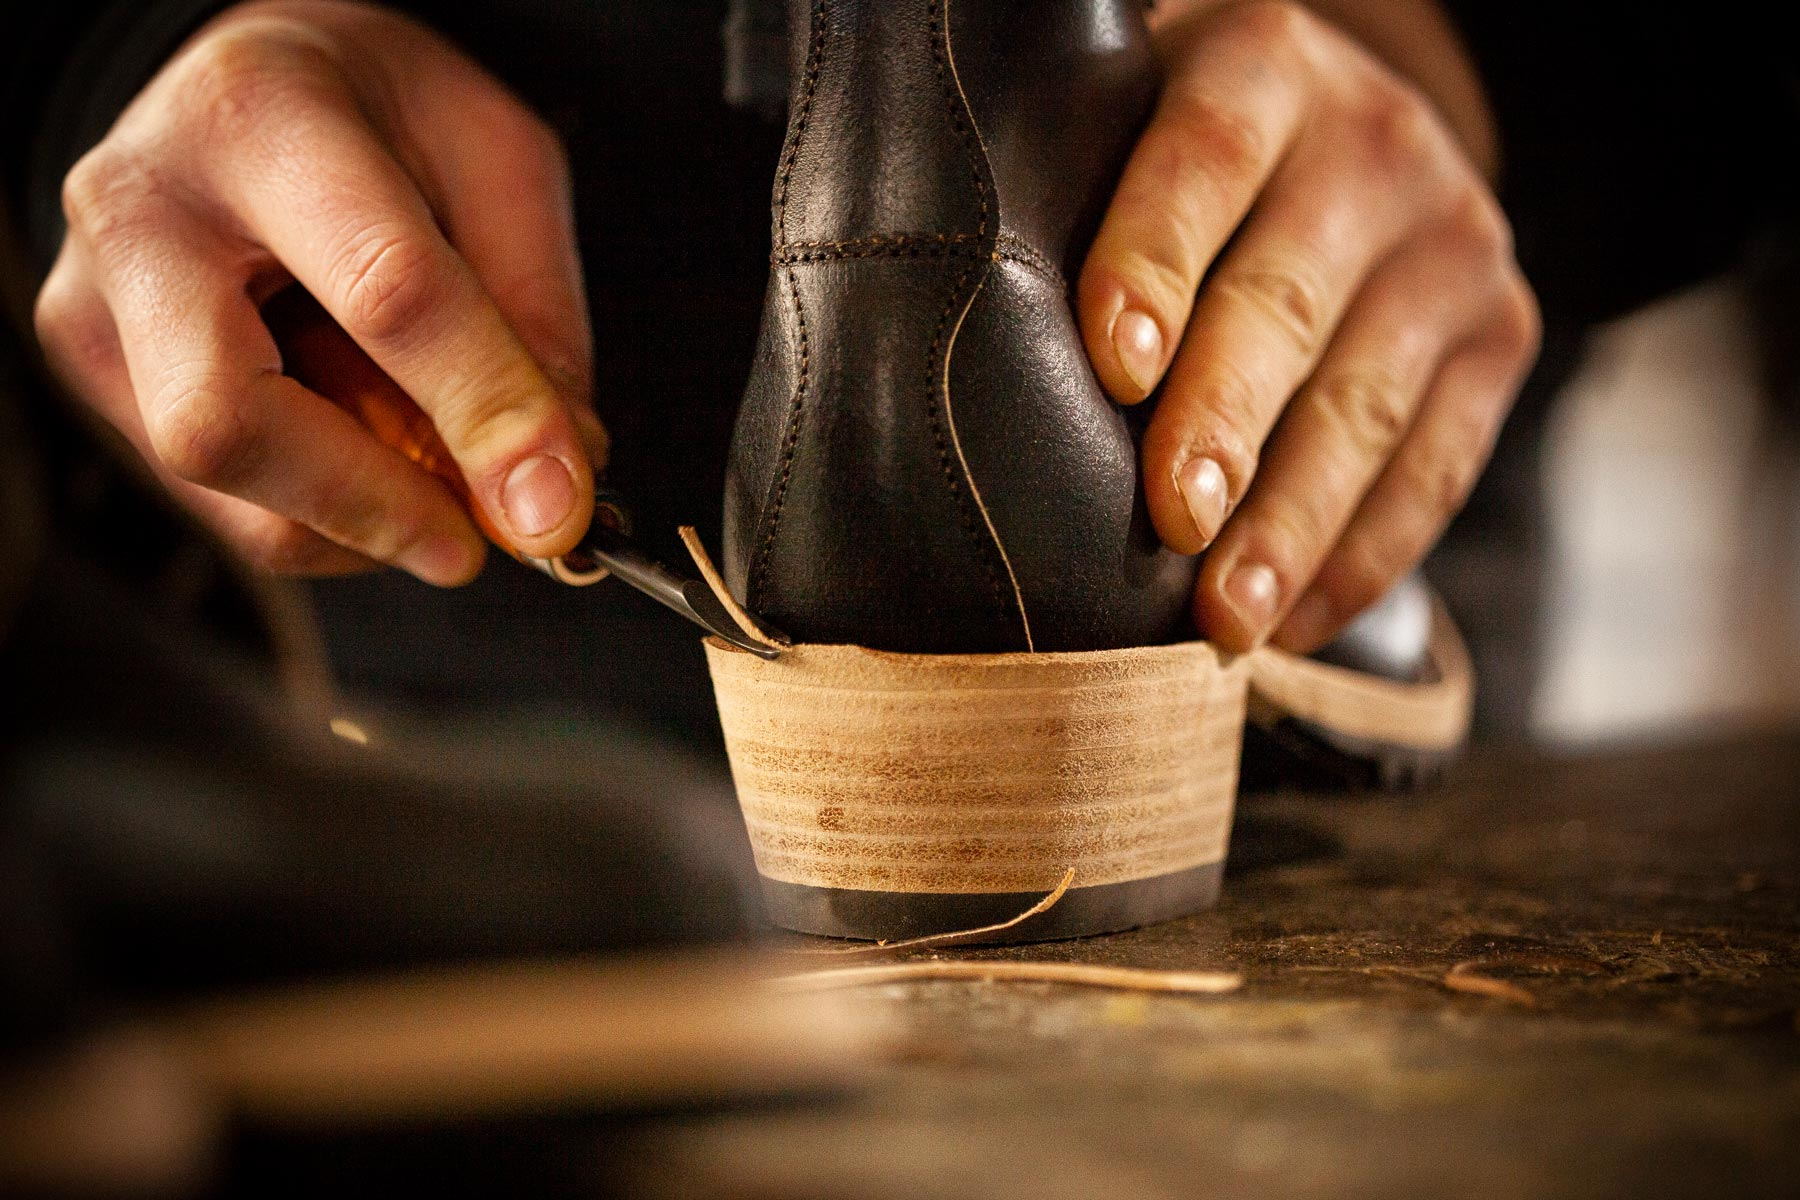 Close-up shot of hands finishing the leather edge of the heel of a women's boot